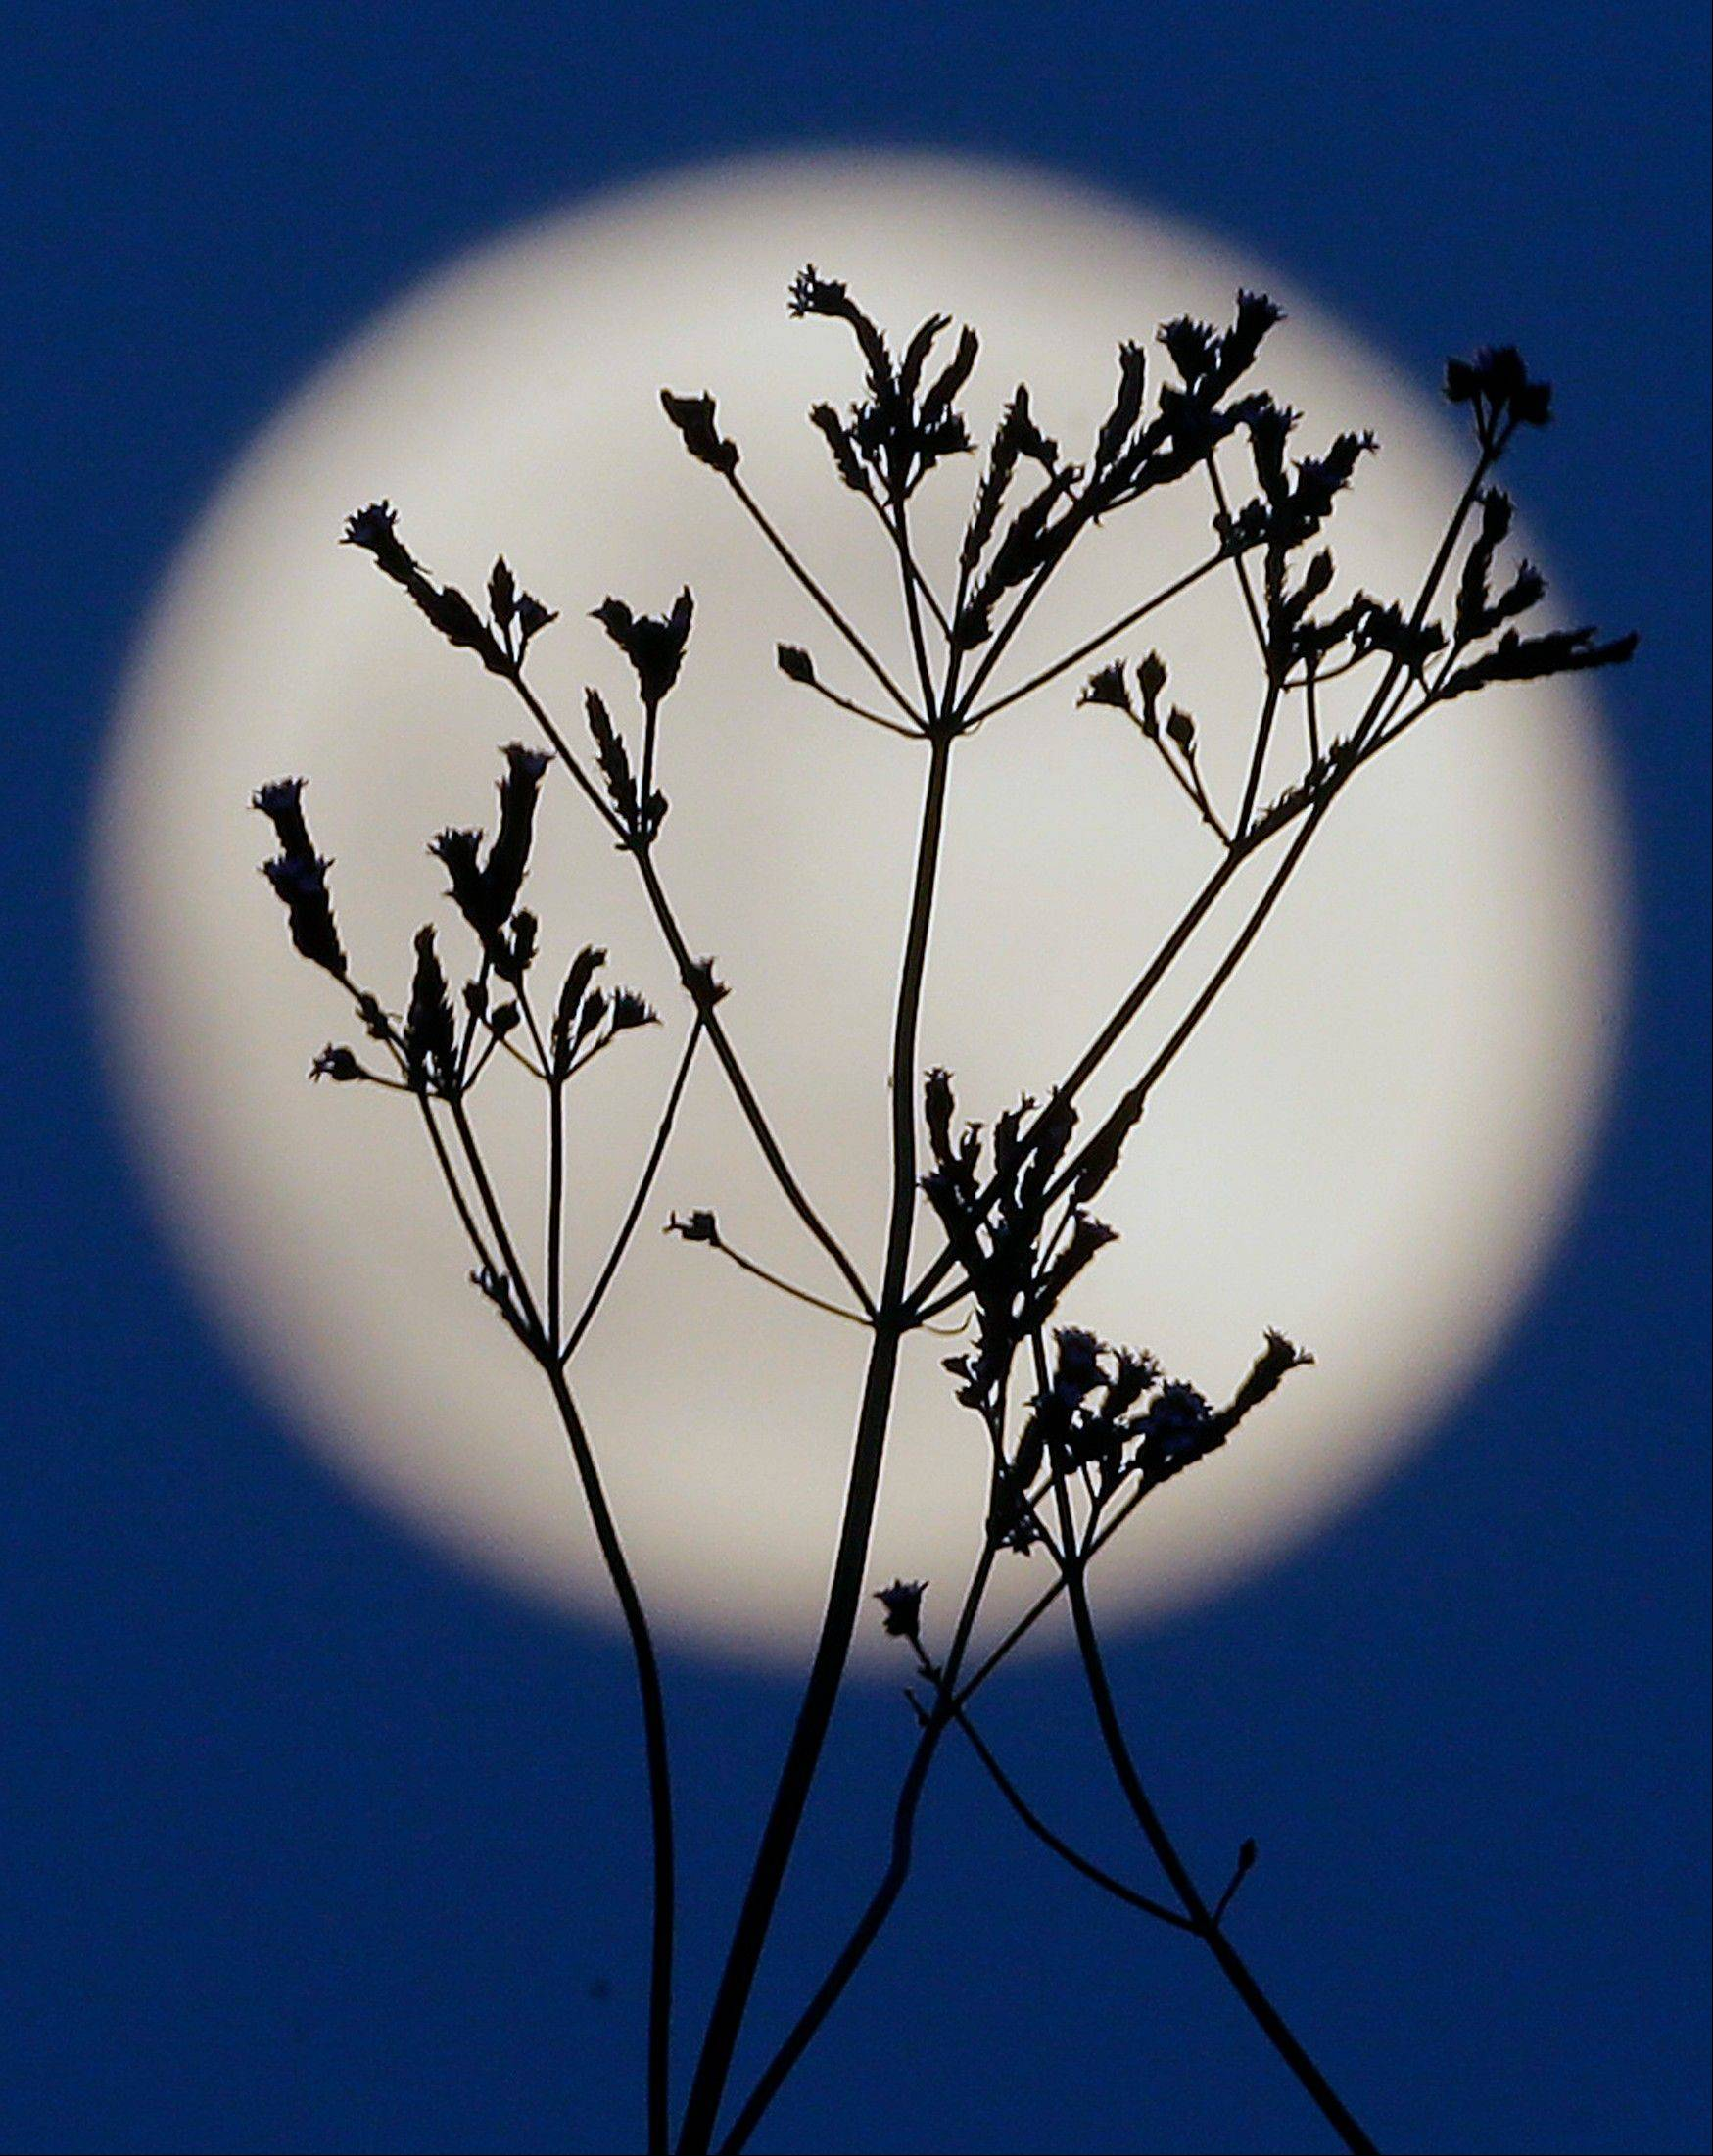 "A ""supermoon"" rises behind roadside plants growing in Prattville, Ala., Saturday, June 22, 2013. The biggest and brightest full moon of the year graces the sky early Sunday as our celestial neighbor swings closer to Earth than usual. While the moon will appear 14 percent larger than normal, sky watchers won't be able to notice the difference with the naked eye. Still, astronomers say it's worth looking up and appreciating the cosmos."